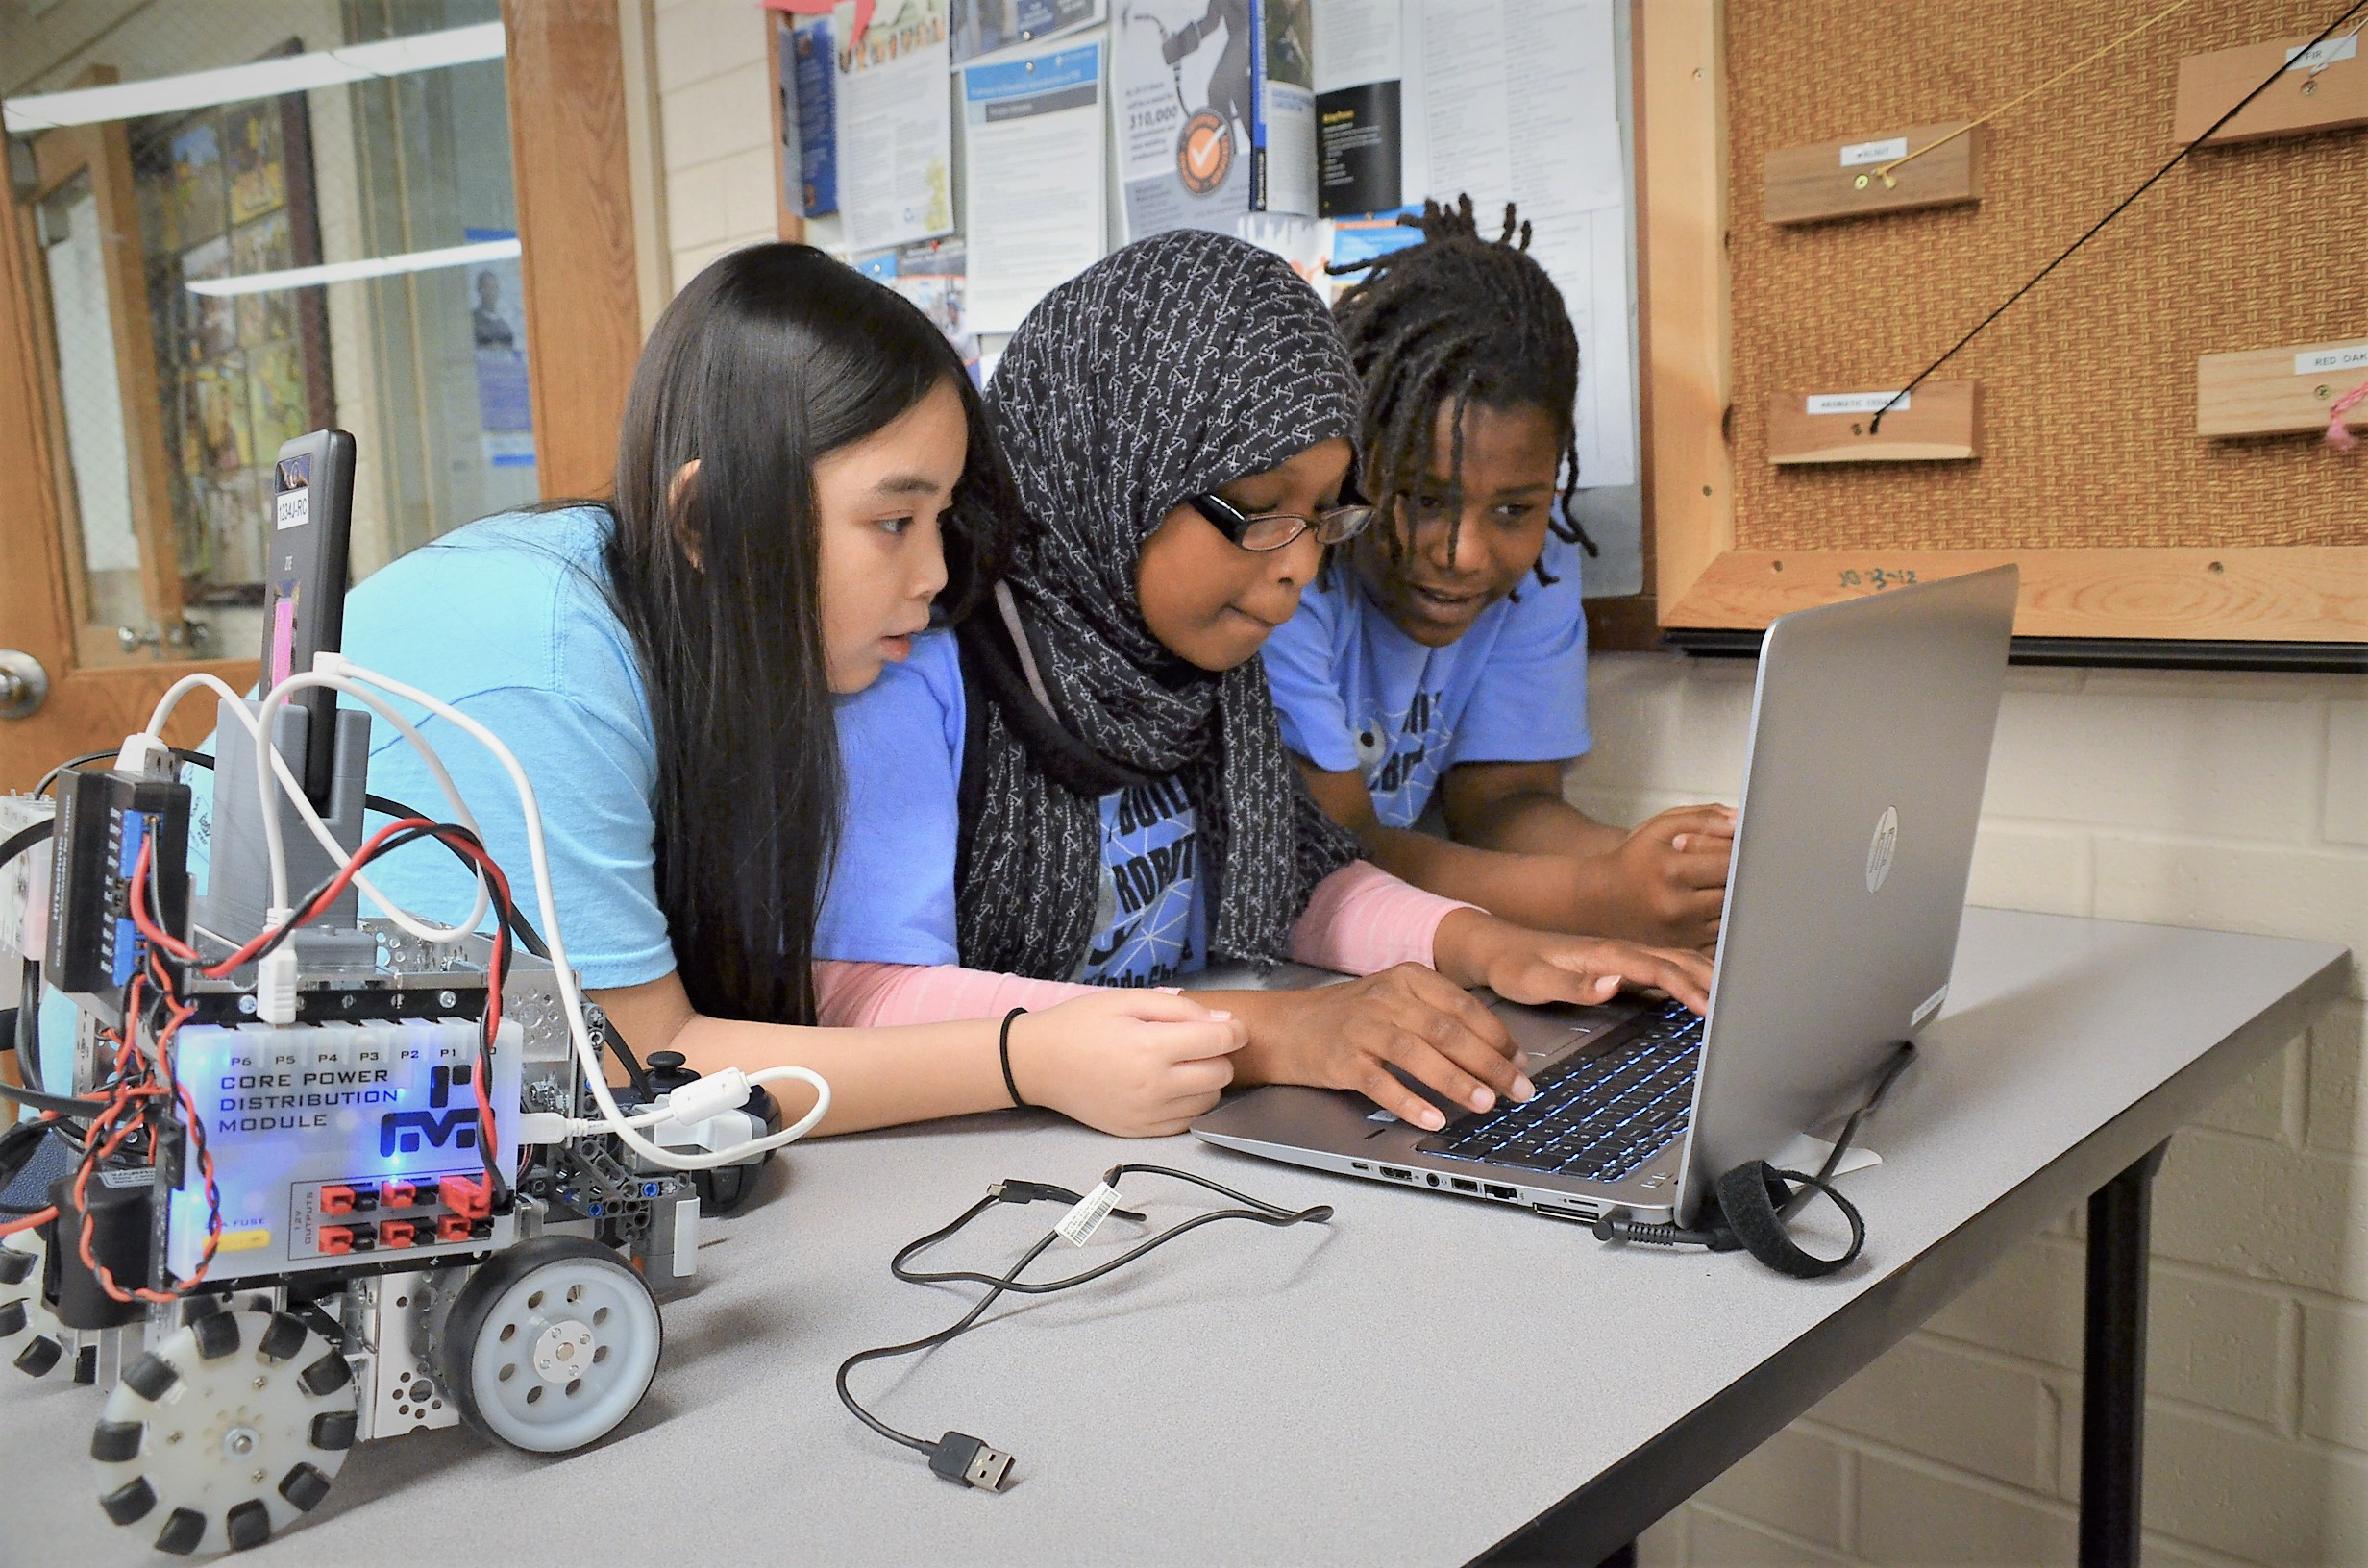 Summer school 3 girls race laptop robotics STEM 2016